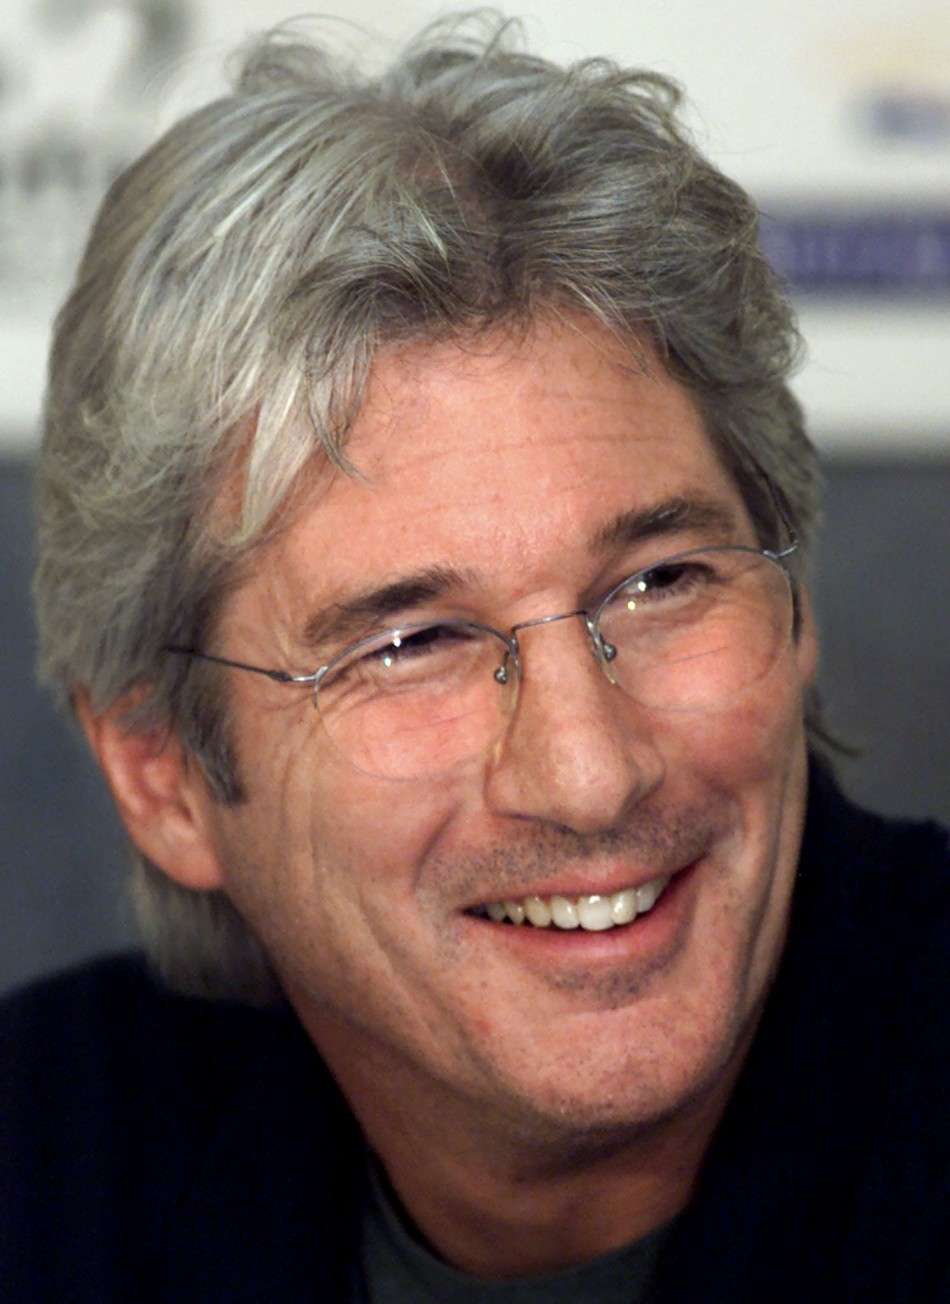 Richard Gere might join the rest of the cast of The Best Exotic Marigold Hotel, for the sequel